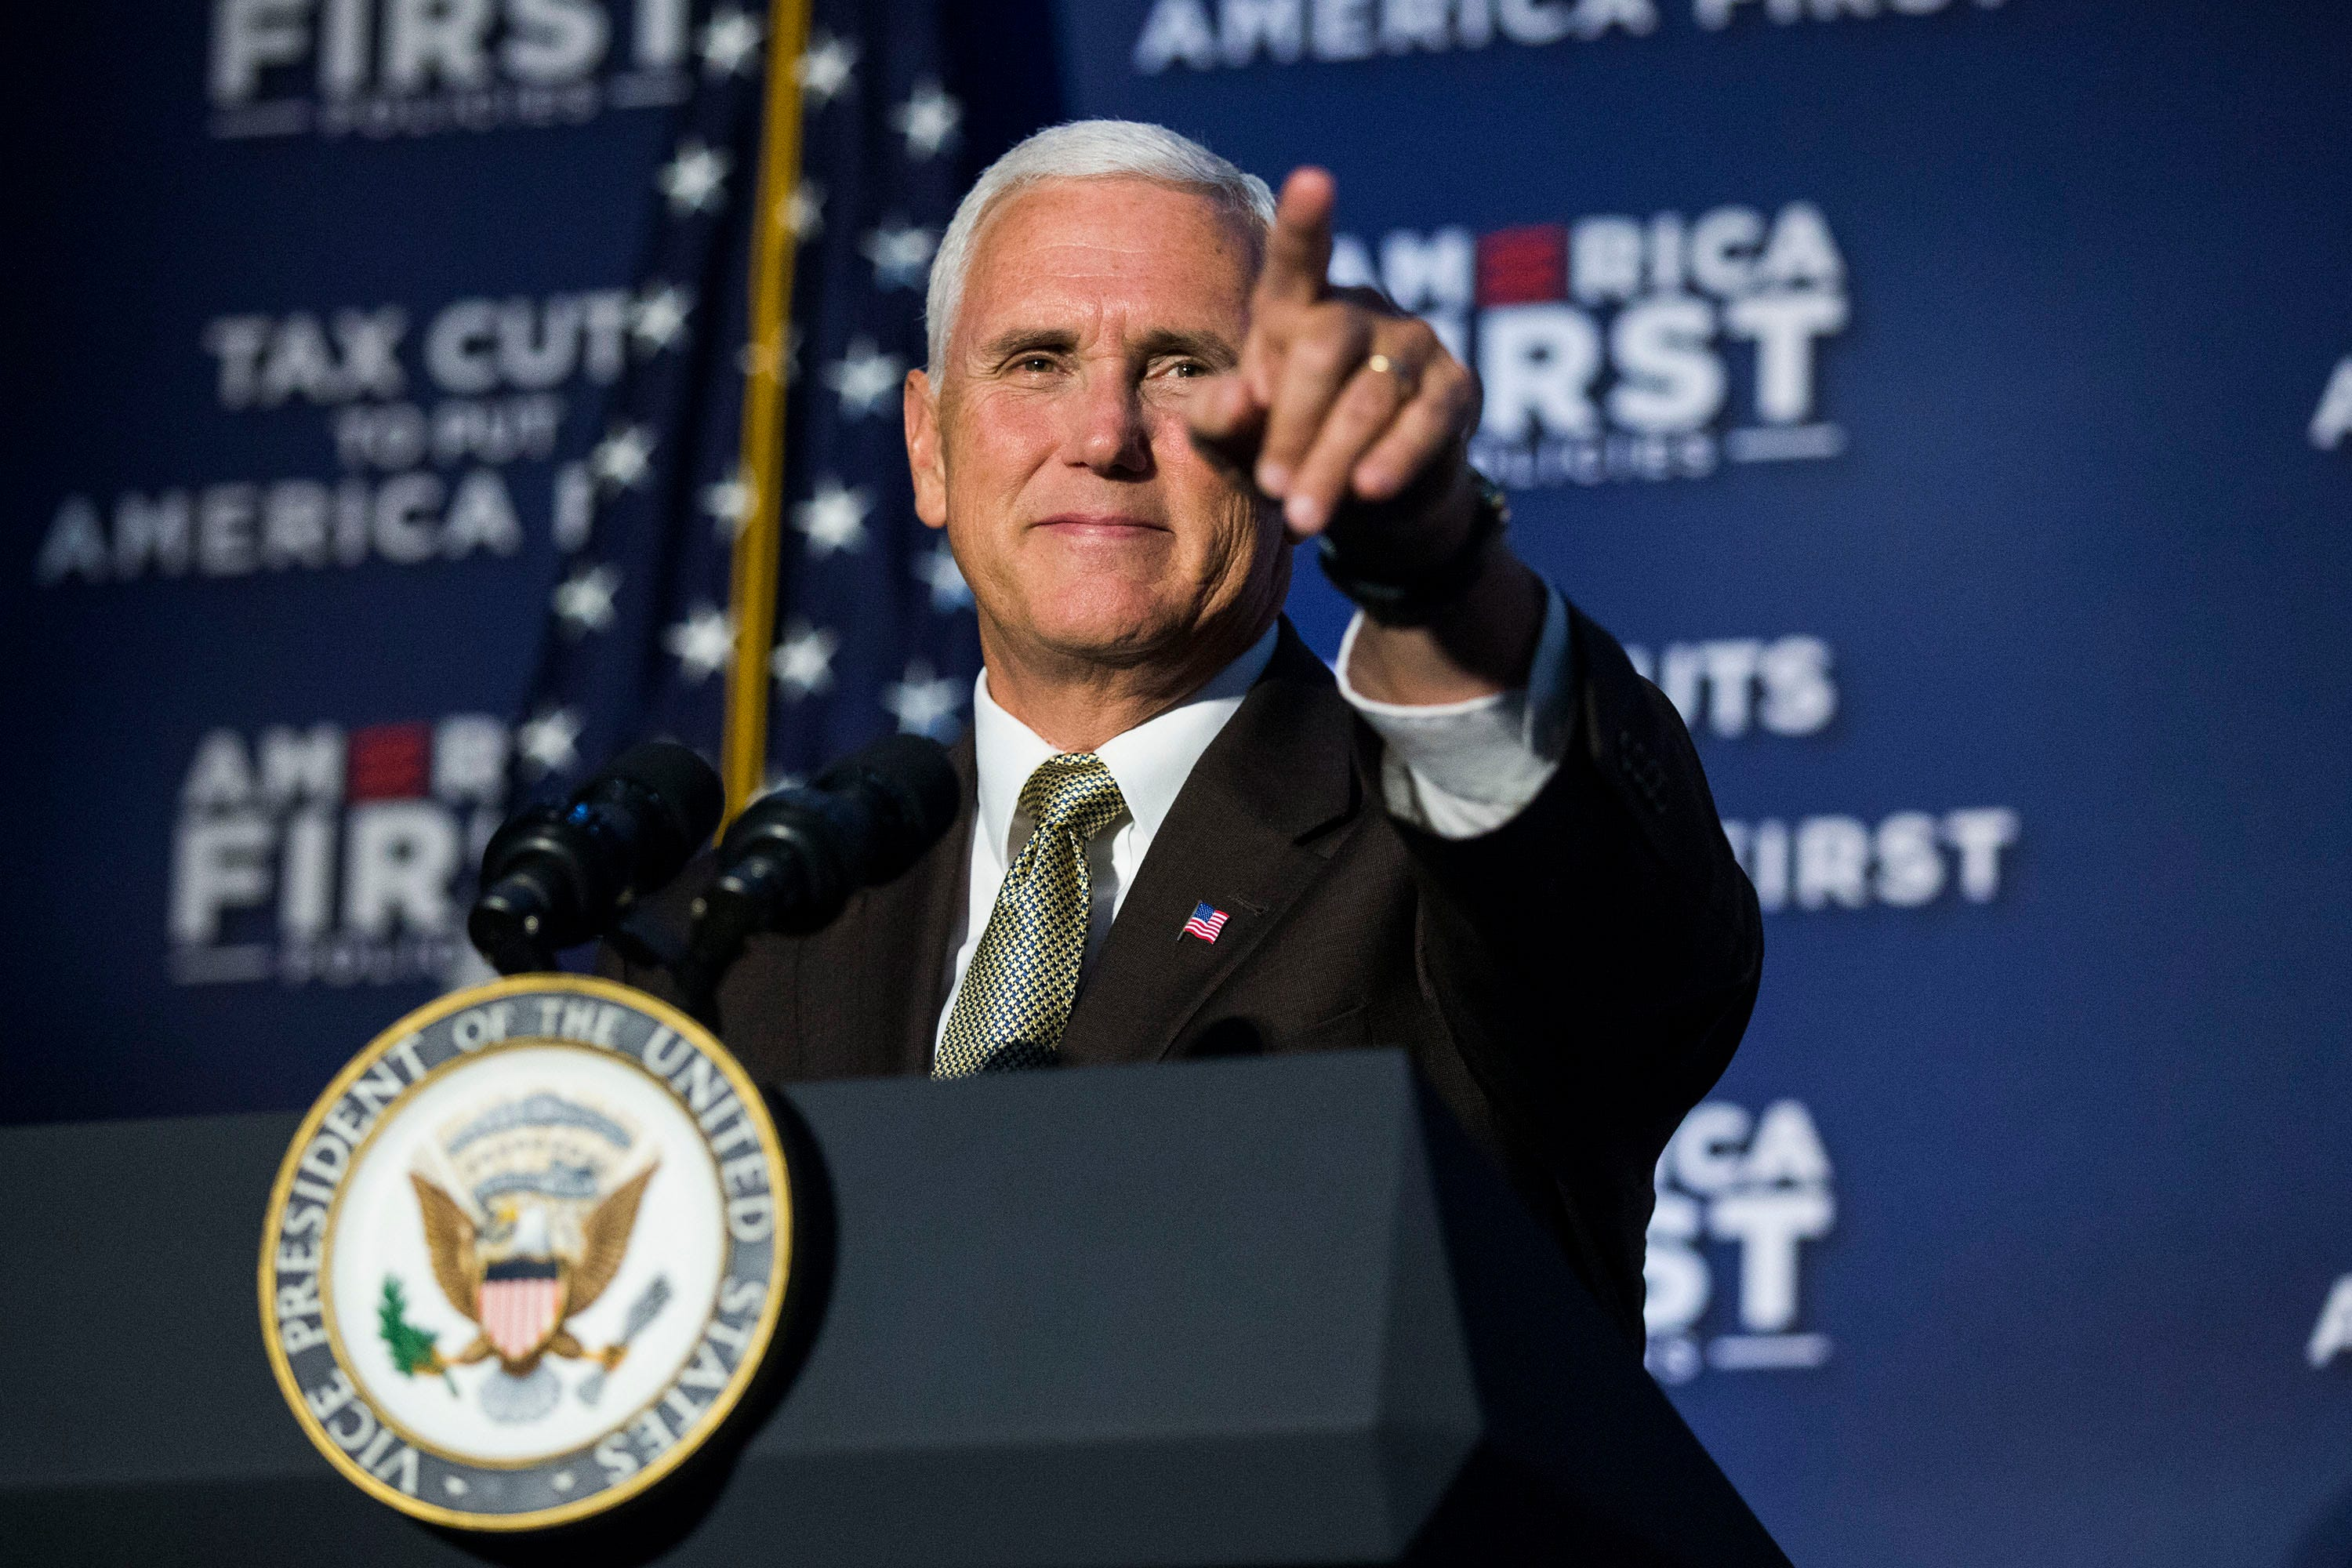 Vice President Mike Pence coming to Waukee in October to promote USMCA trade deal